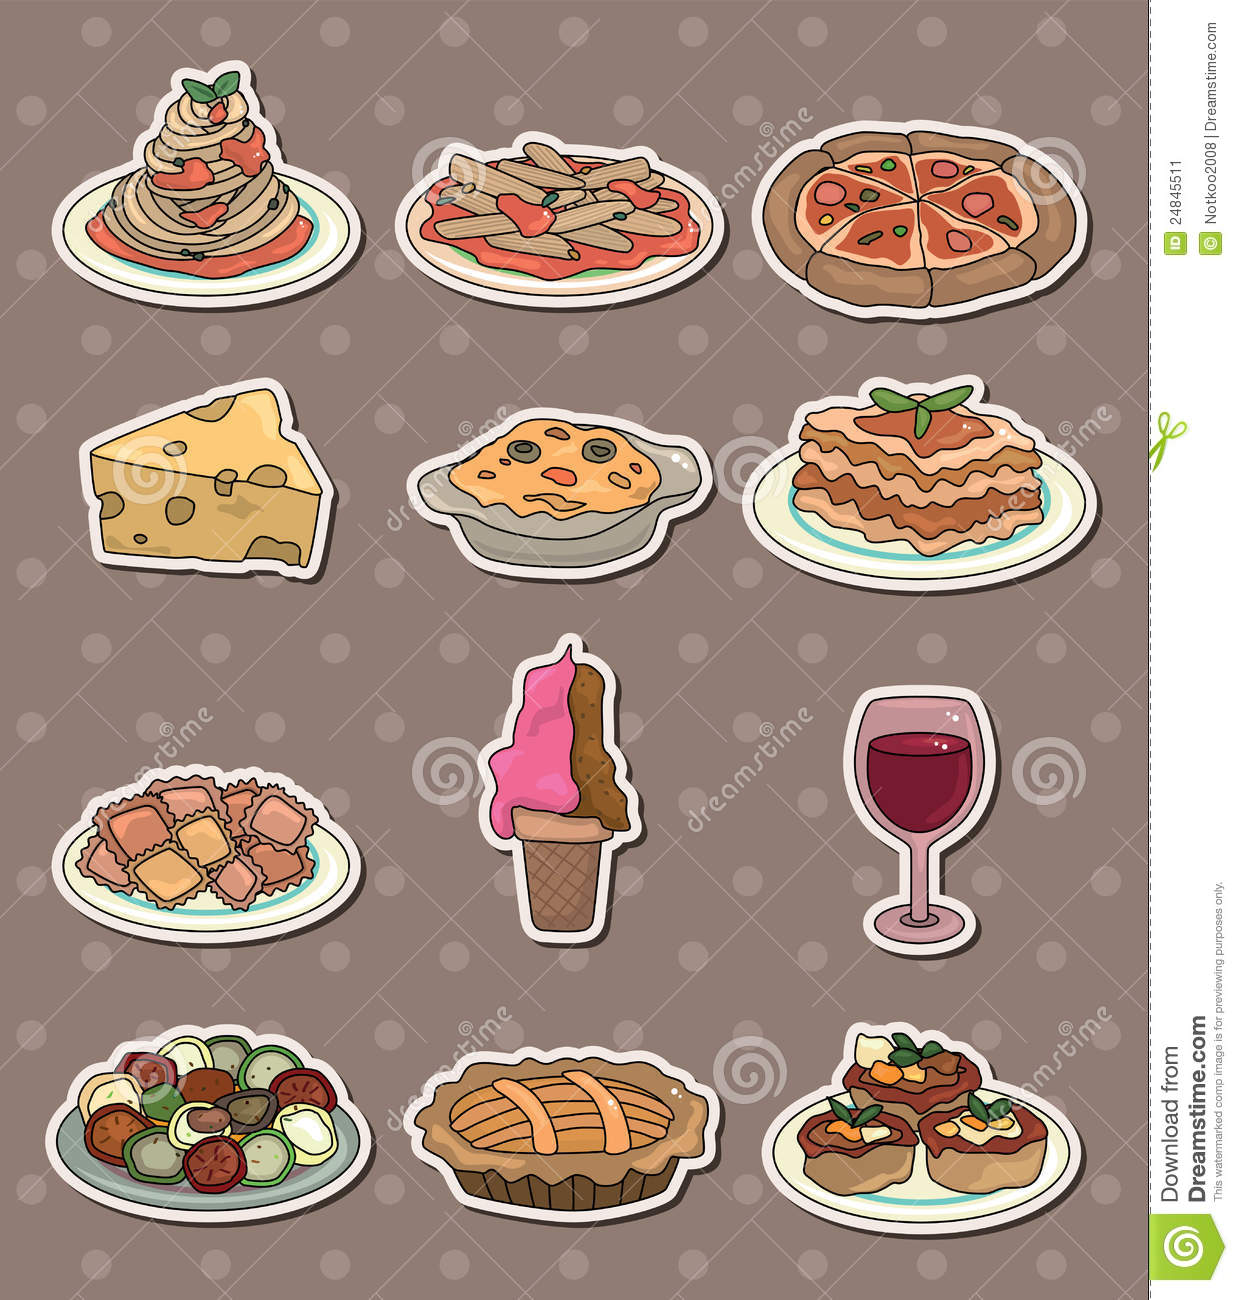 Sticker alu protection cuisine interesting french menu ii - Sticker alu protection cuisine ...